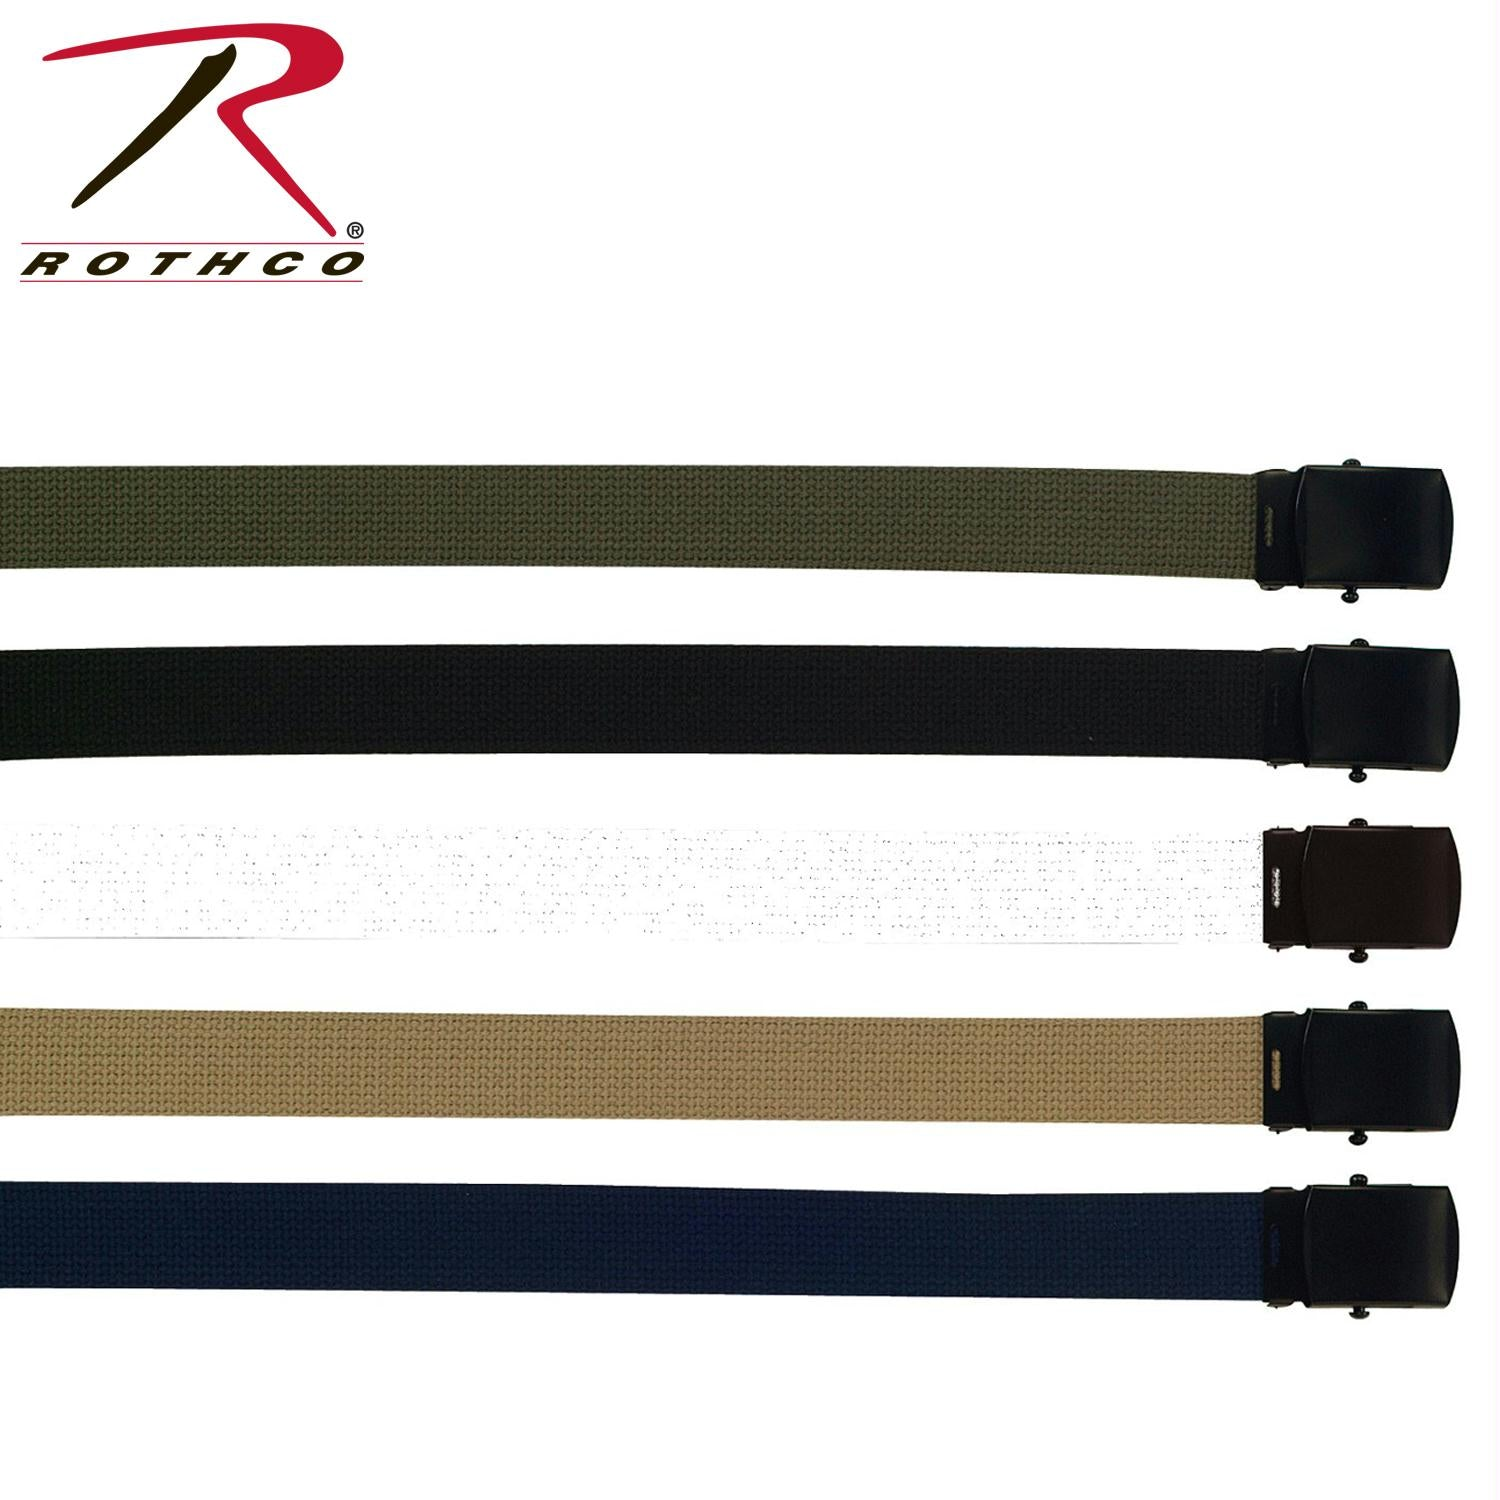 Rothco Military Web Belts w/ Black Buckle - Black / 64 Inches